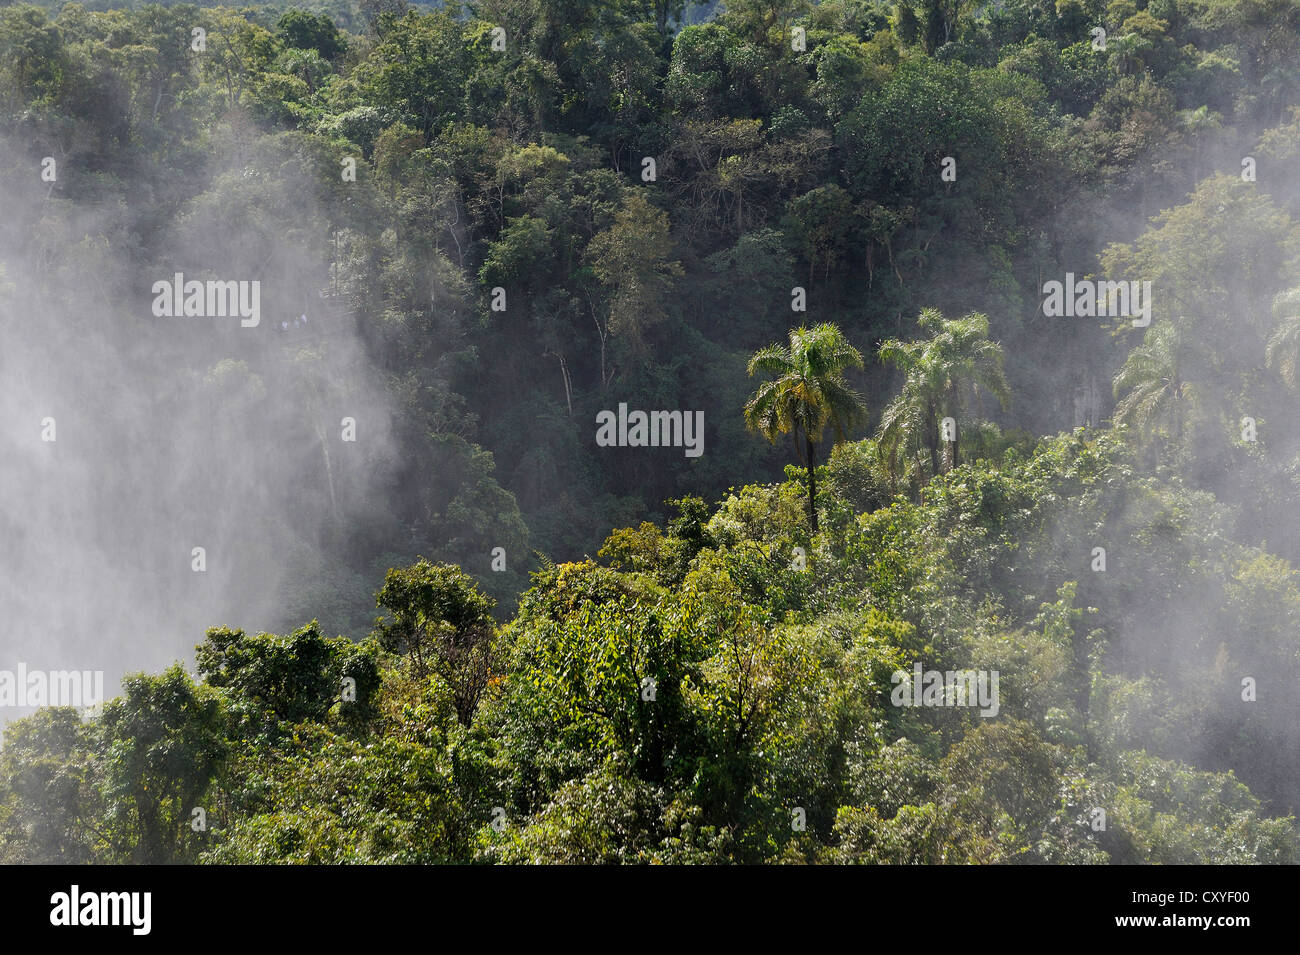 Spray covering the rain forest, Iguazu or Iguacu Falls, UNESCO World Heritage Site, at the border of Brazil and - Stock Image